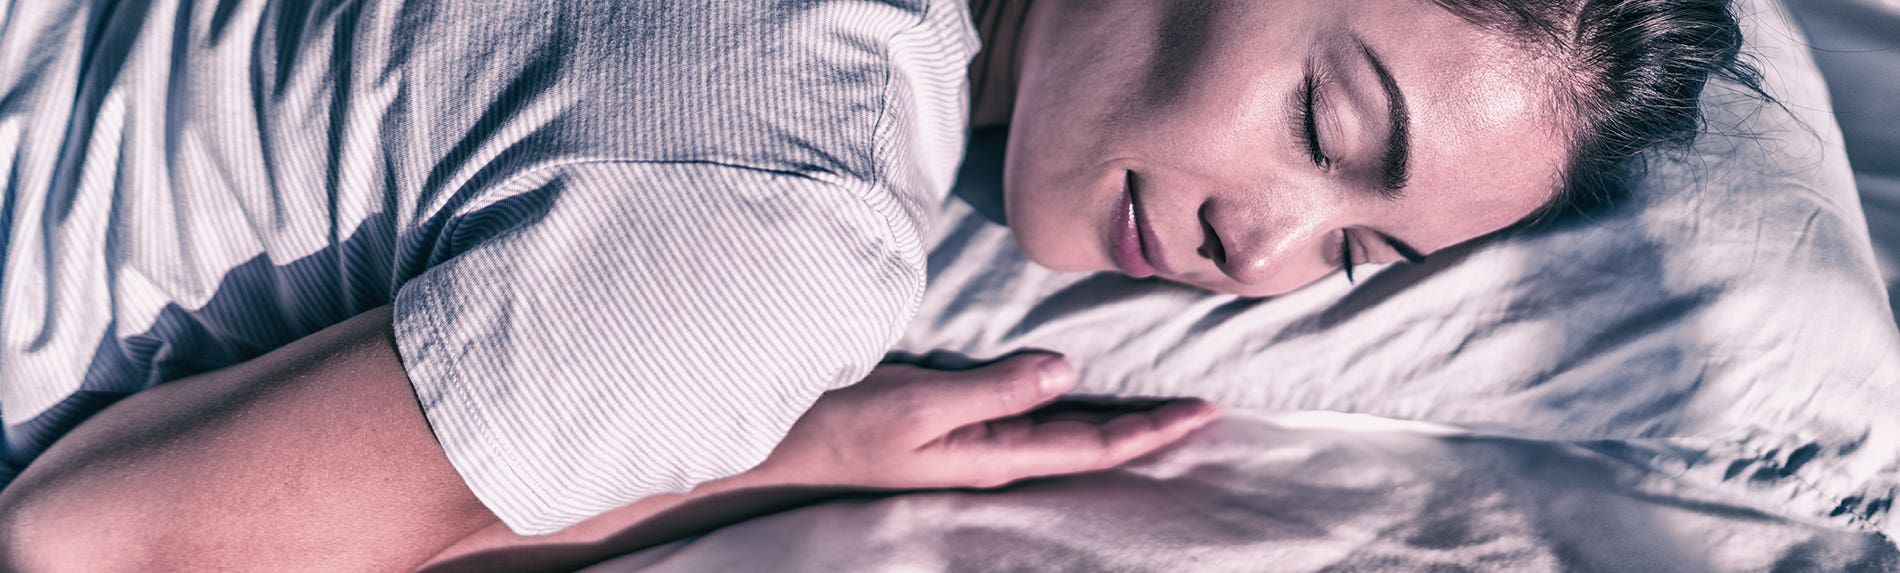 Sleeping on Stomach is Good or Bad for You?